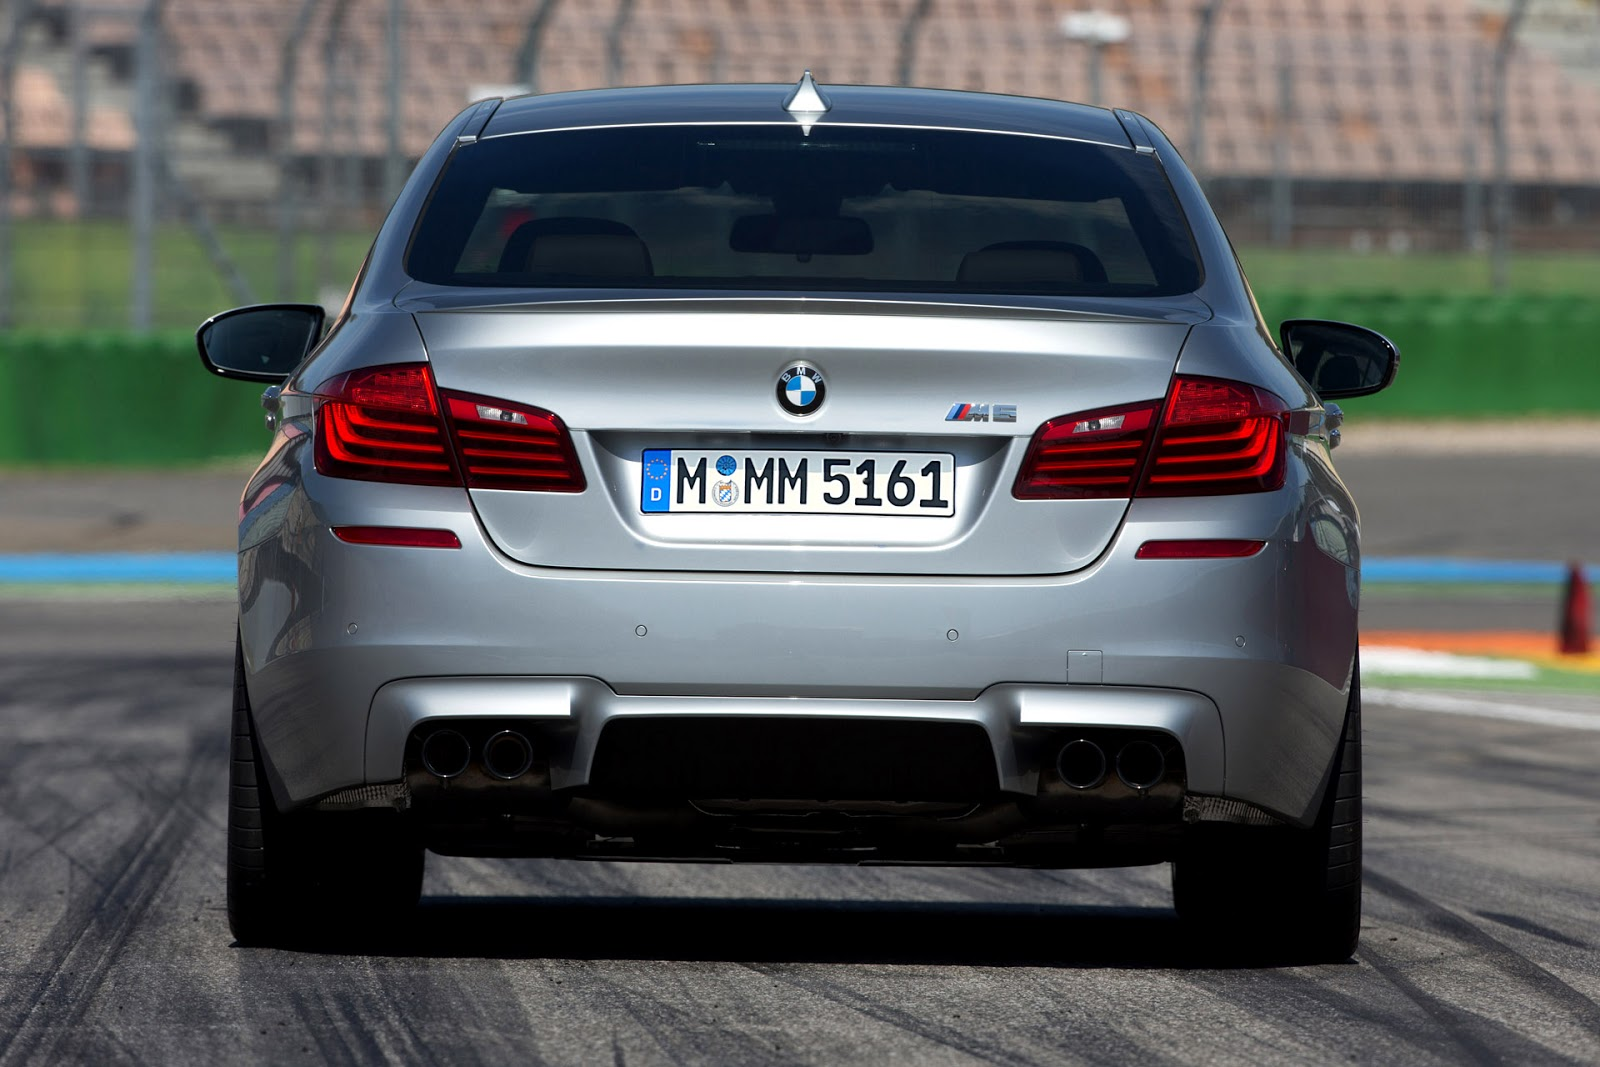 Official 2014 BMW M5 LCI and M6 Competition Package - BMW